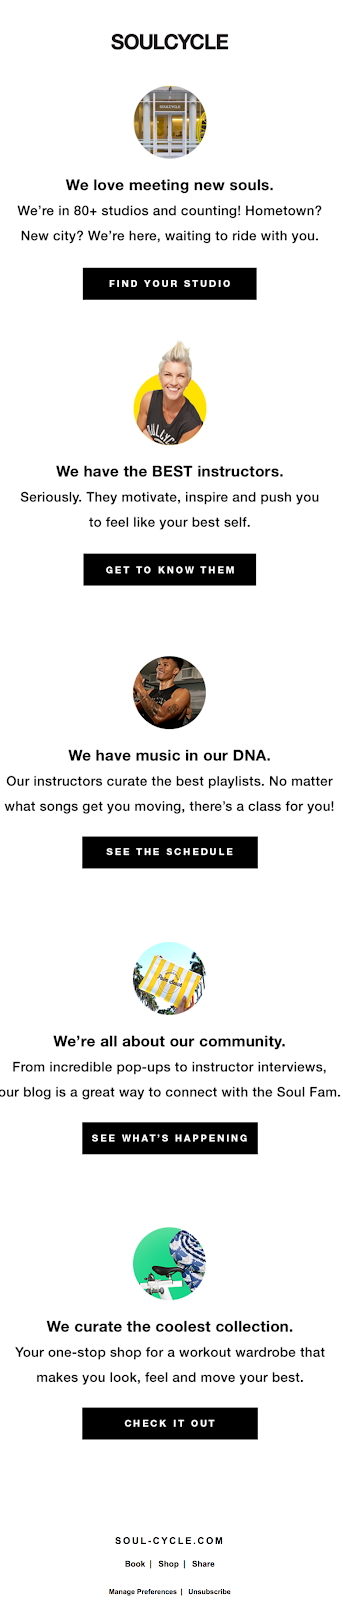 soul cycle value proposition email